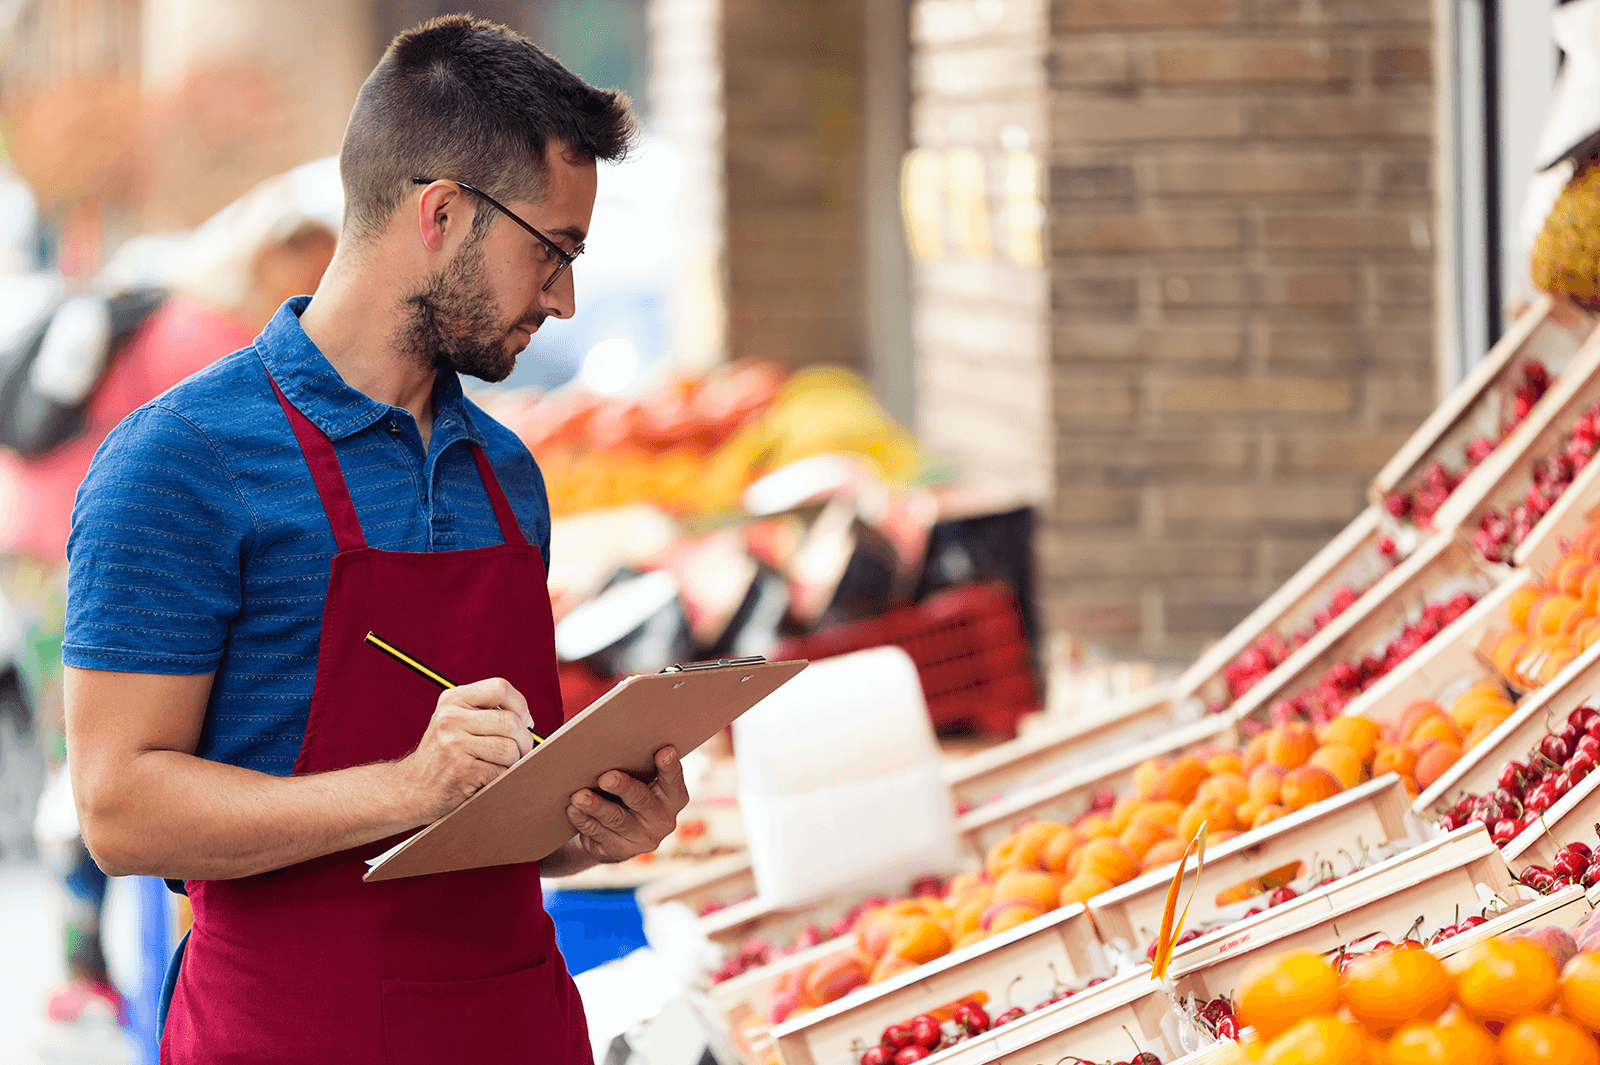 Best Practices for Managing Grocery Supply Chains